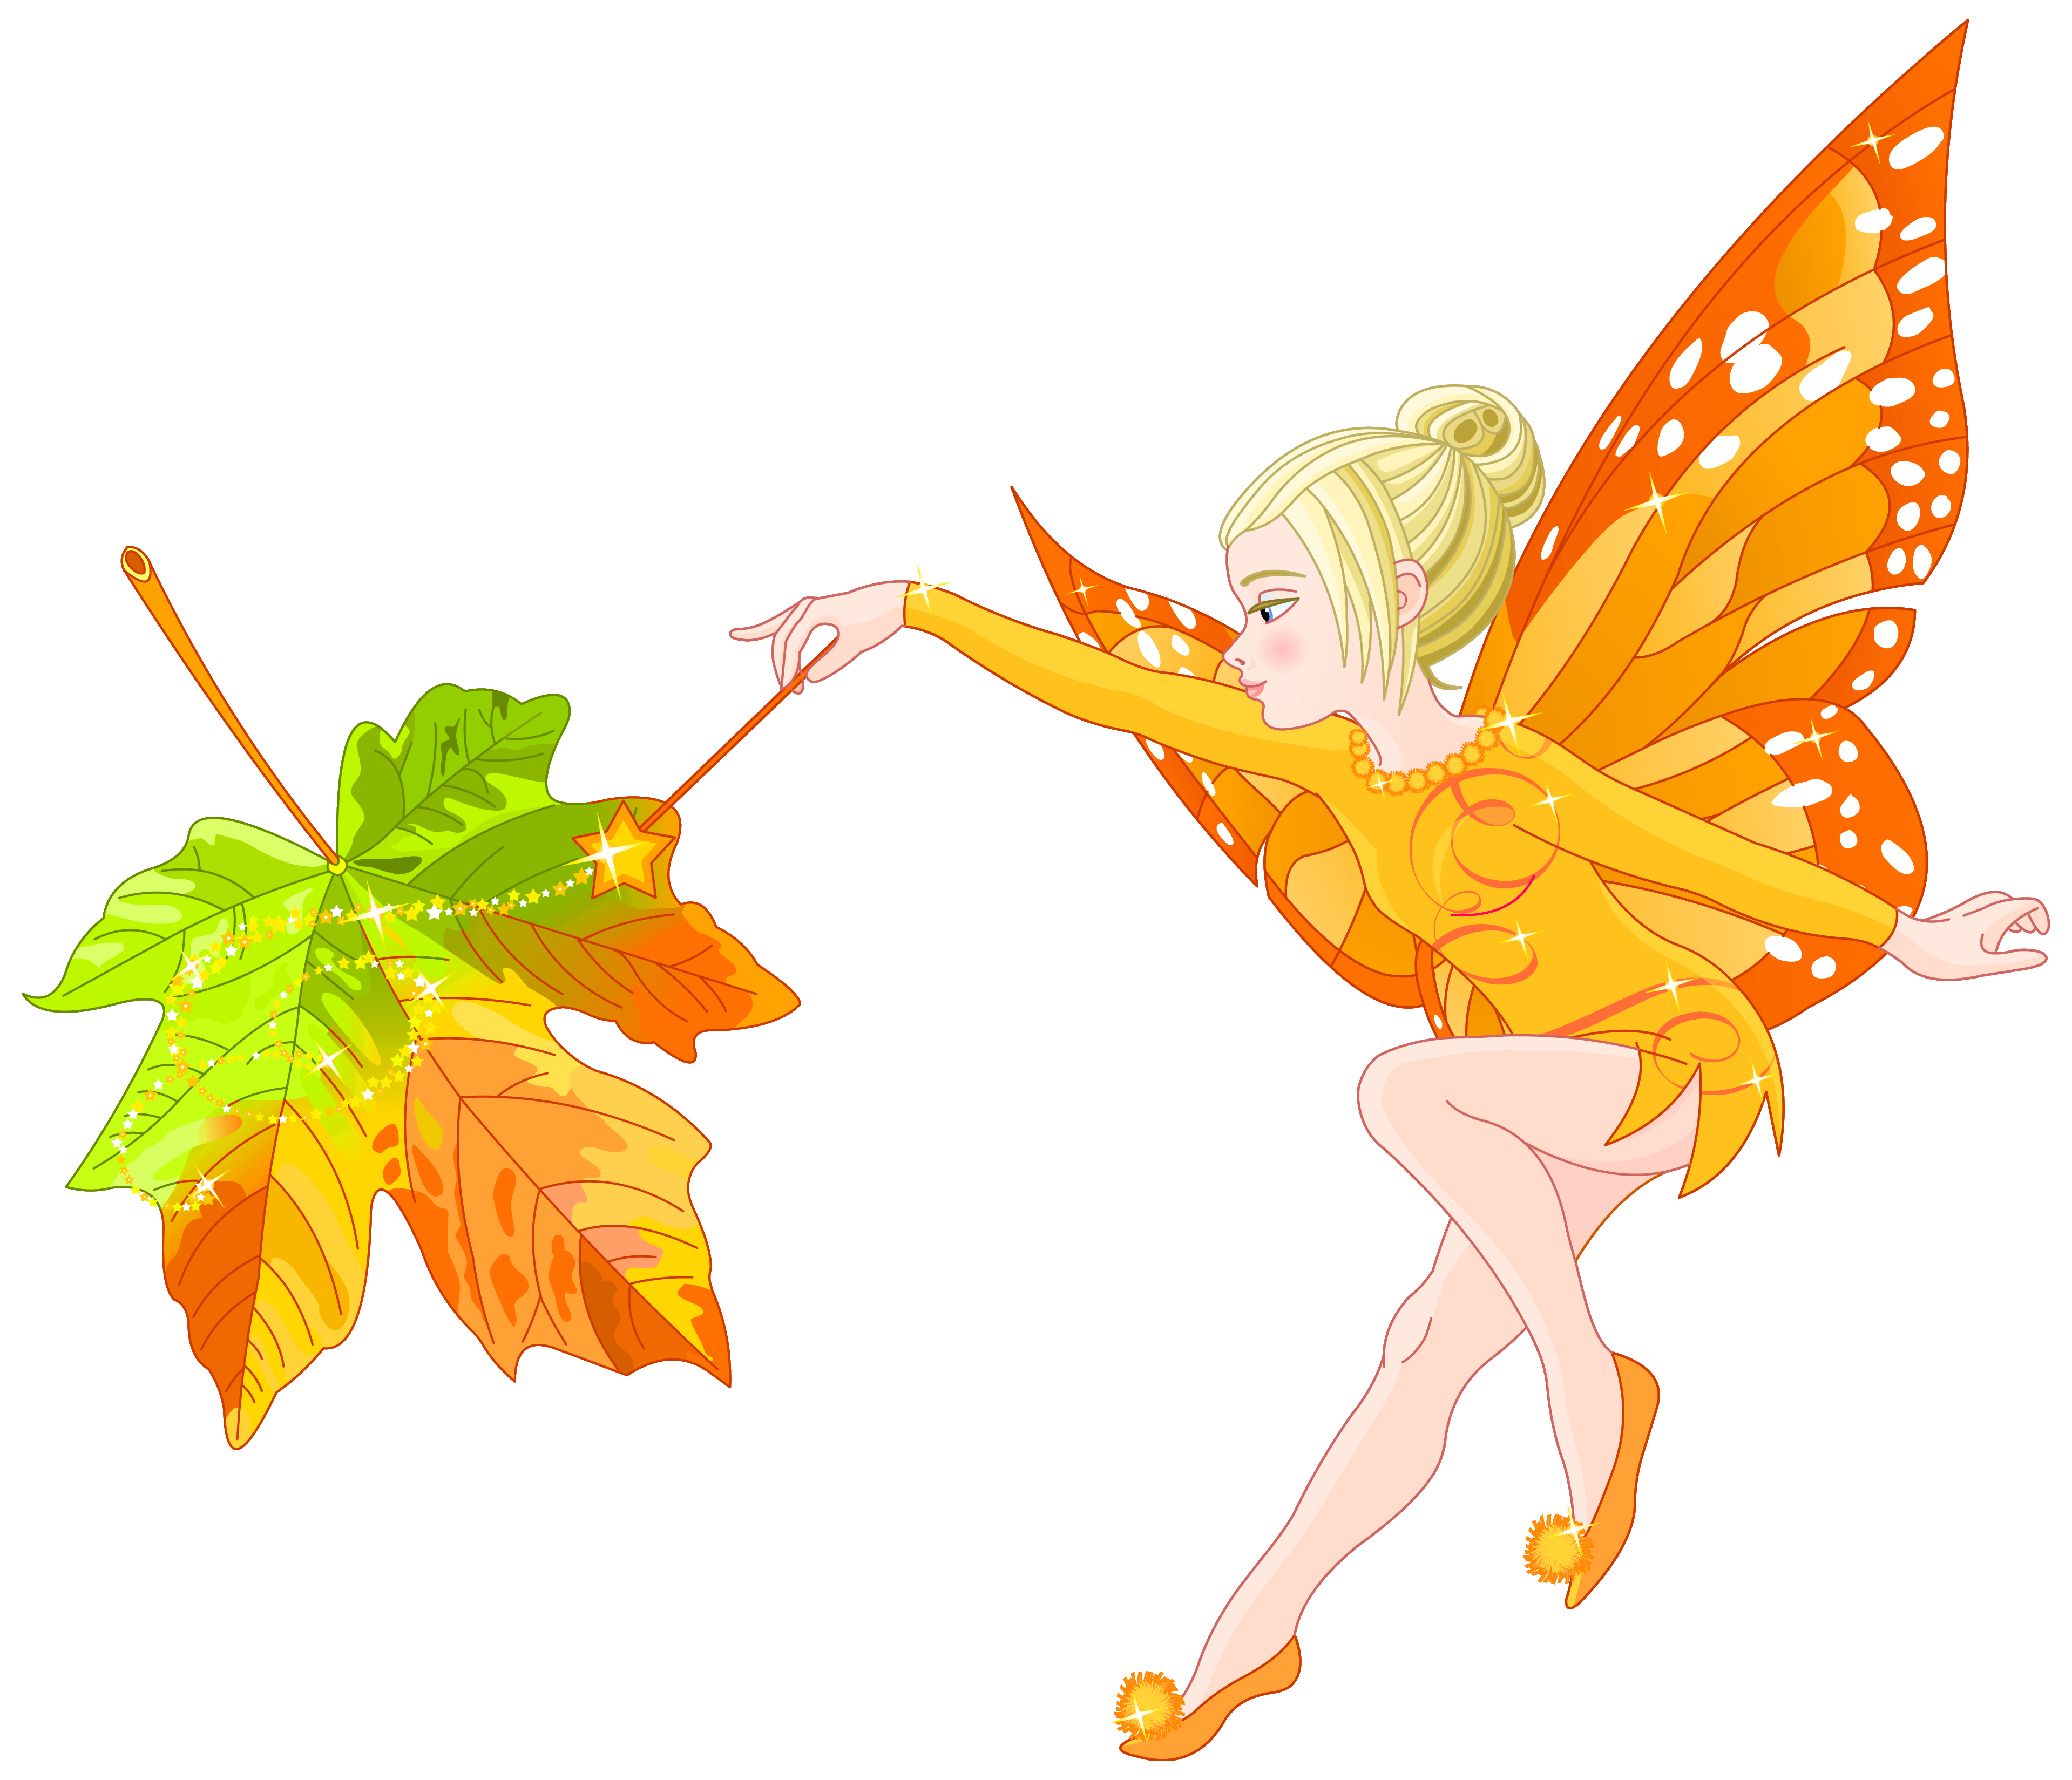 Fairy on a flower clipart clip art royalty free Autumn Fairy PNG Clipart Image   Gallery Yopriceville - High ... clip art royalty free